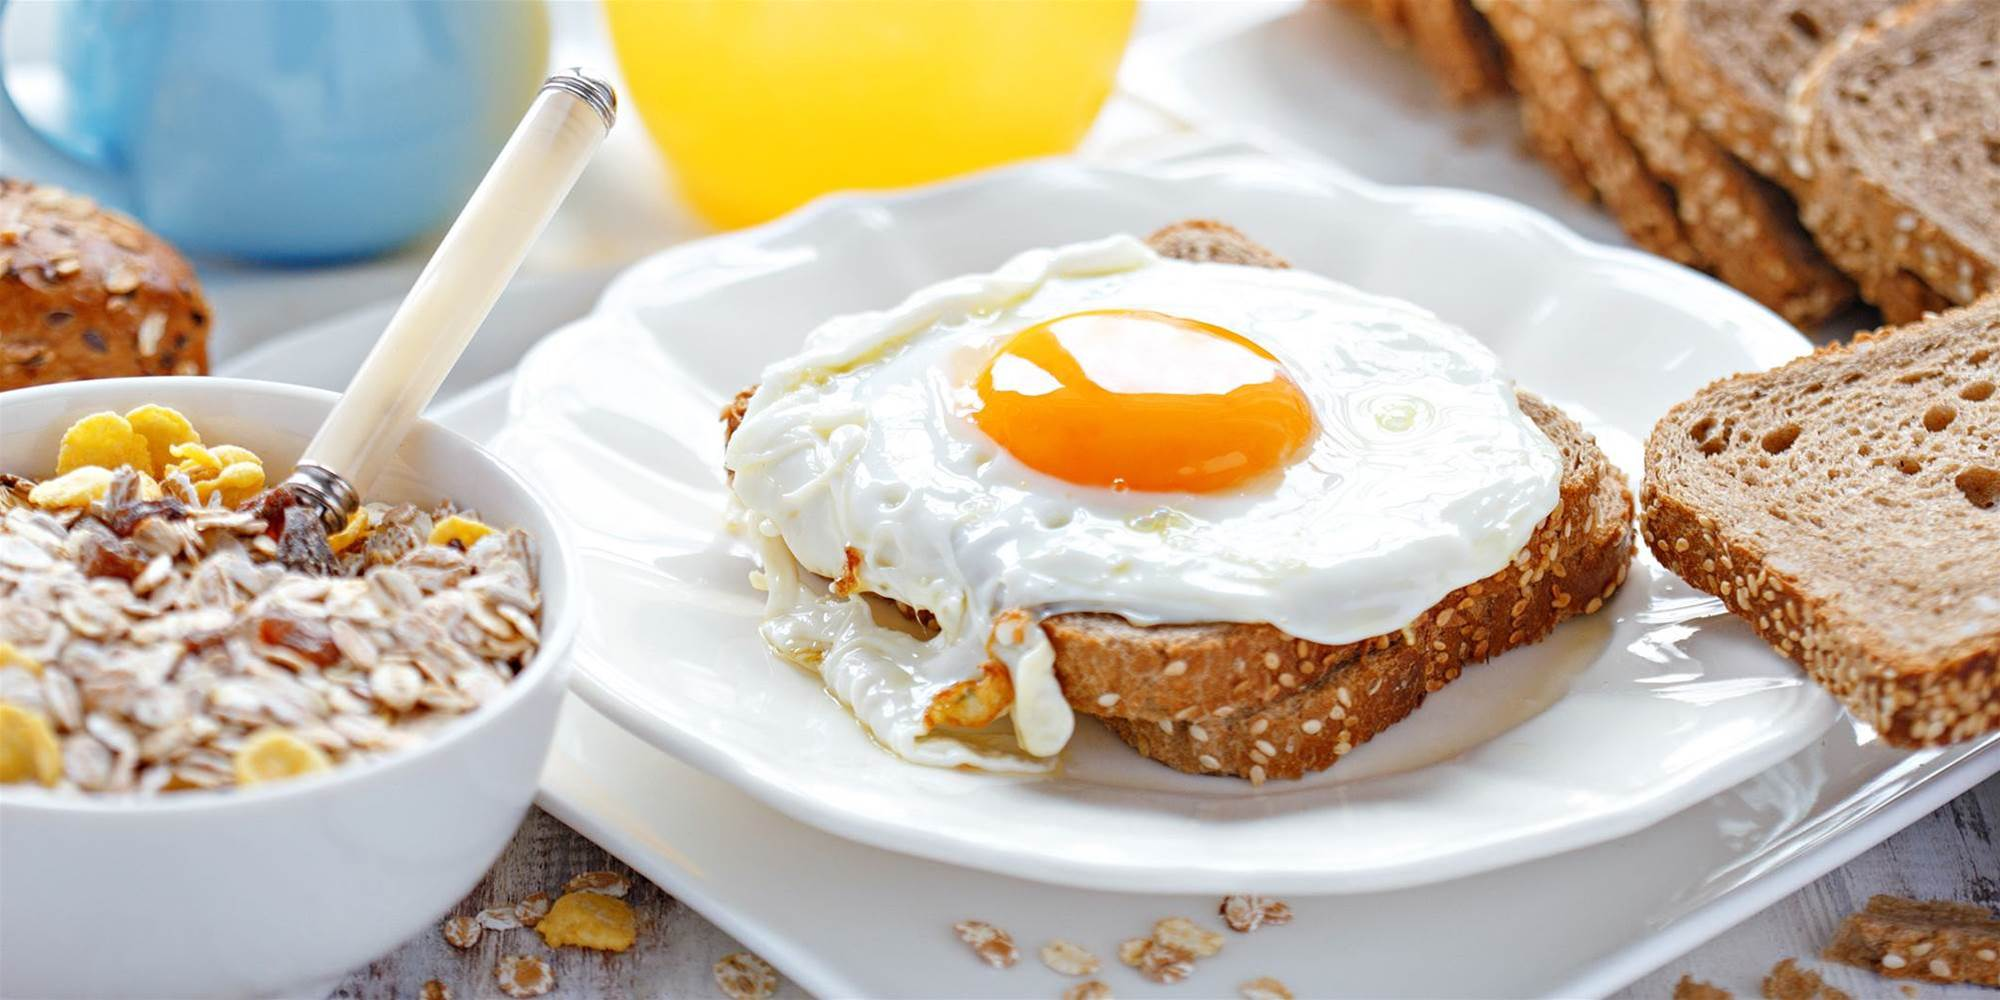 Are Eggs Healthy? Why You Should Stop Worrying About Eggs and Just Eat More of Them